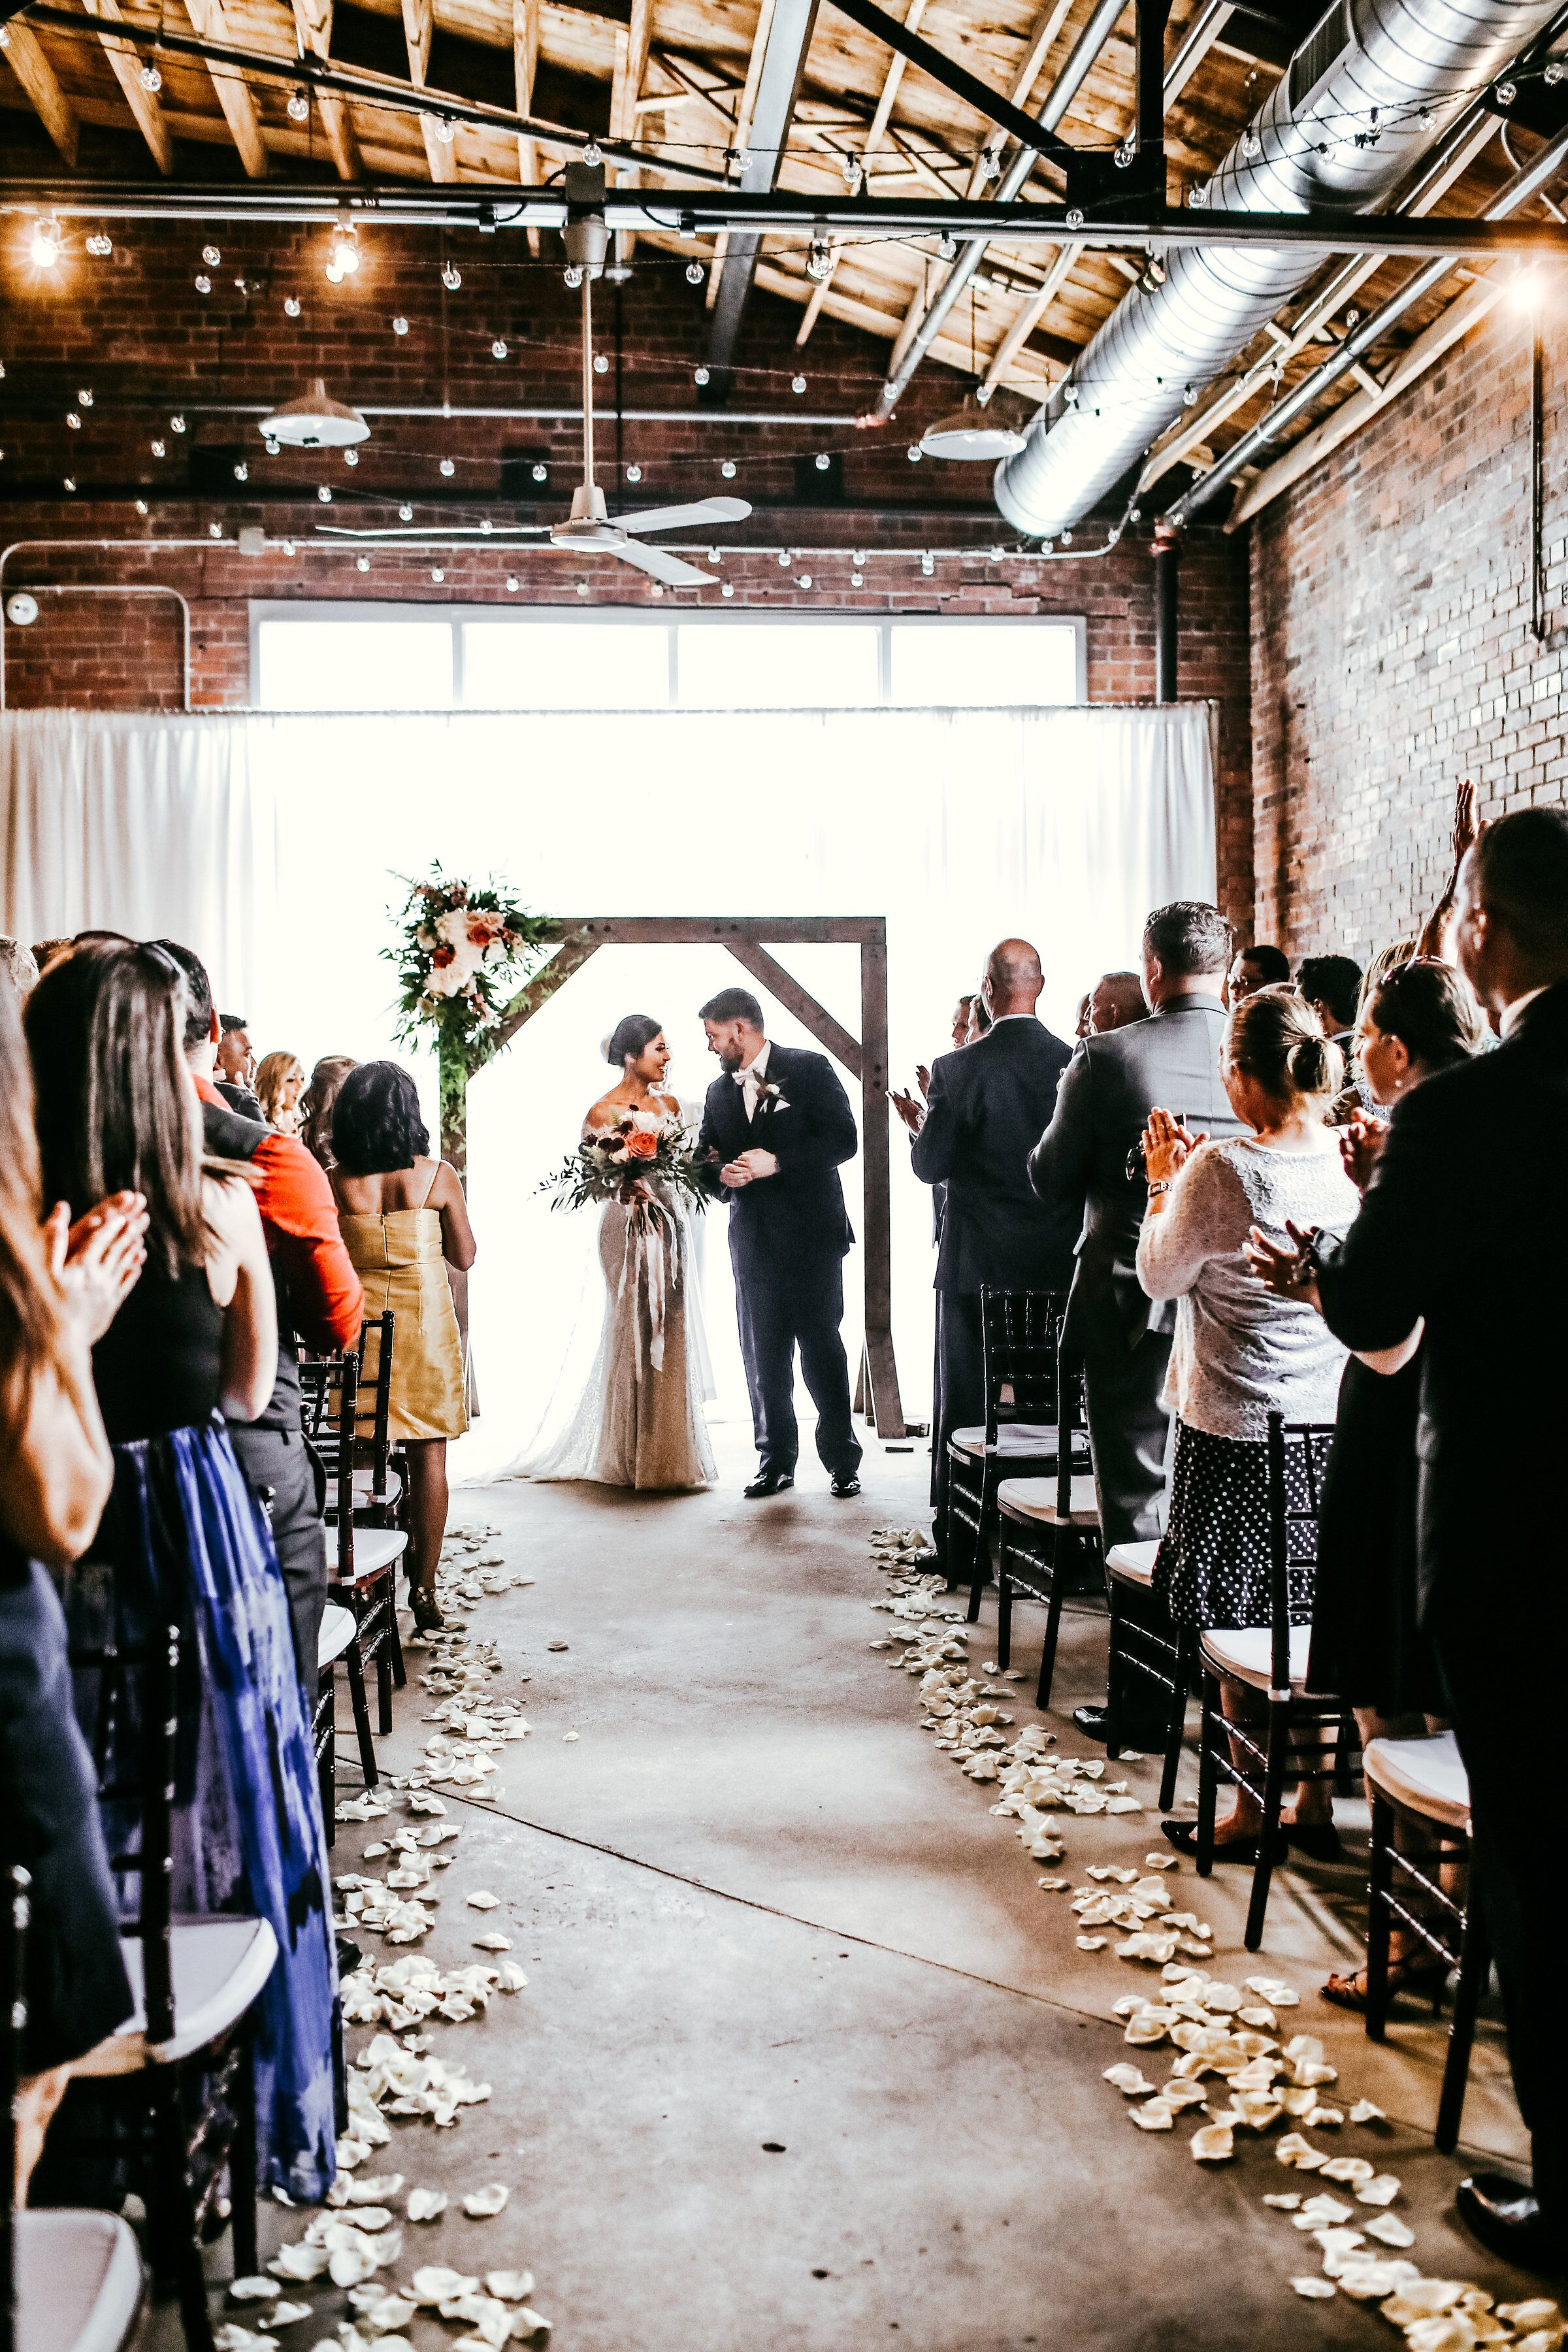 Ceremony in our Little Studio Captured by Lafferty Photo